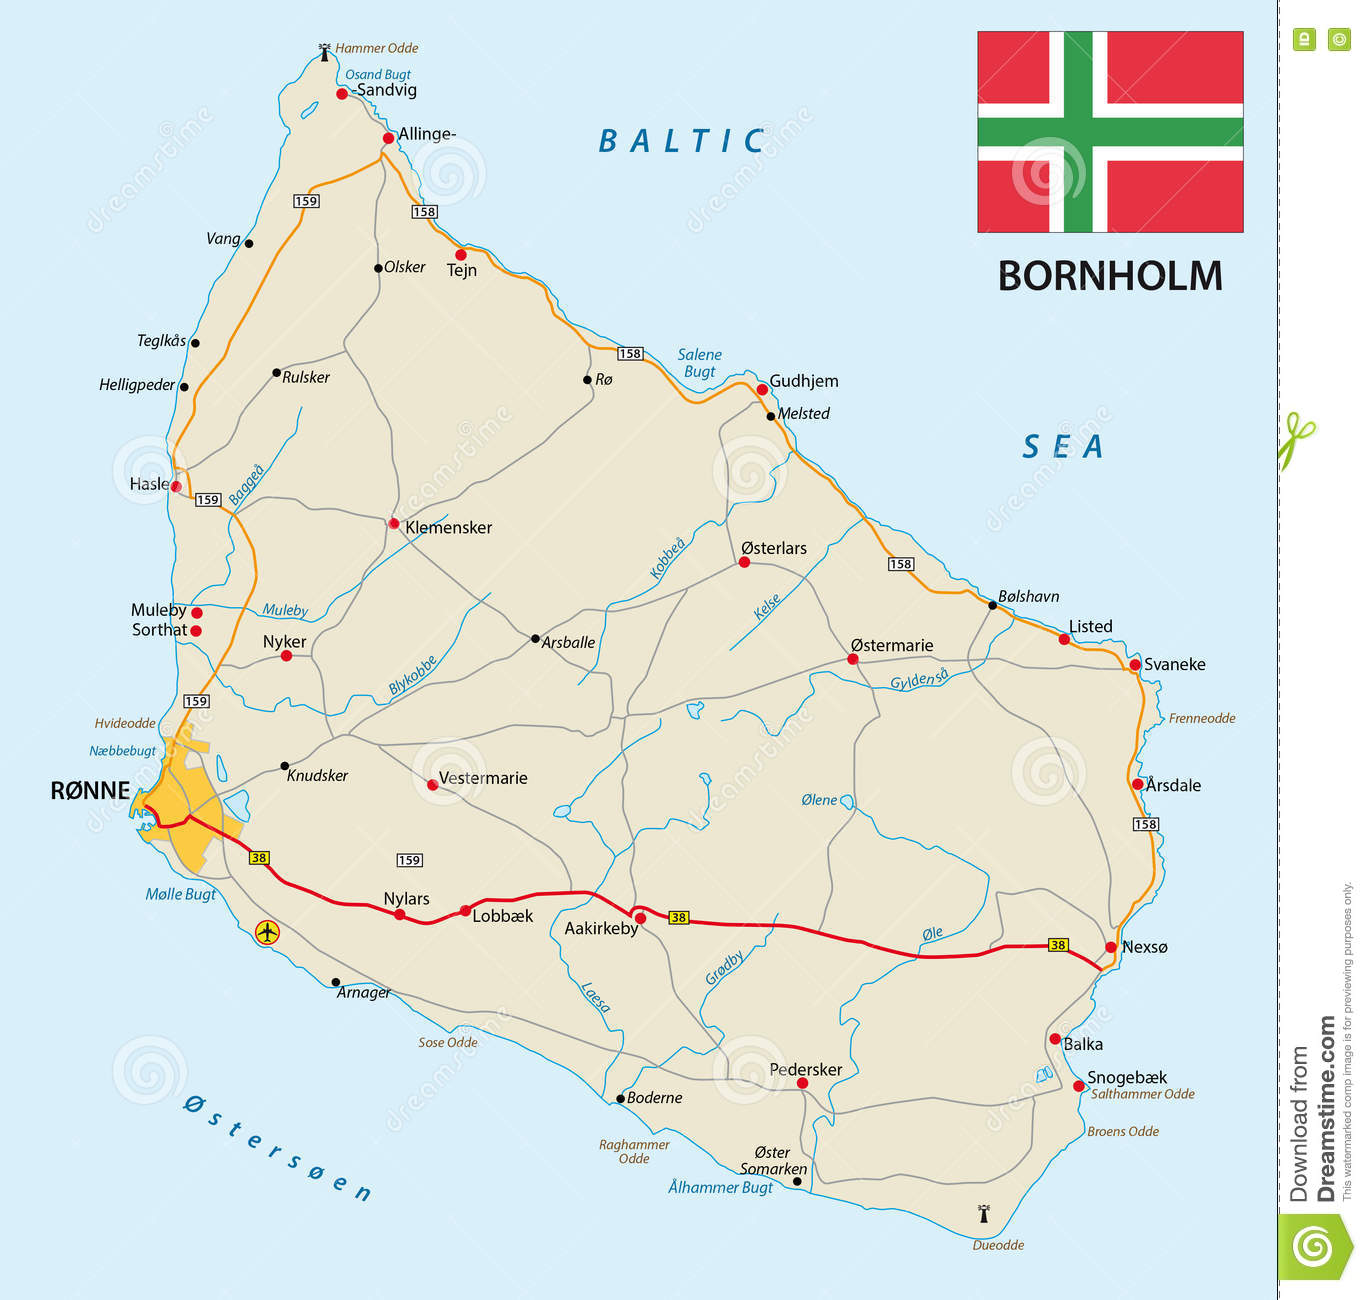 Road Map Of The Danish Iseland Bornholm In The Baltic Sea With Flag ...